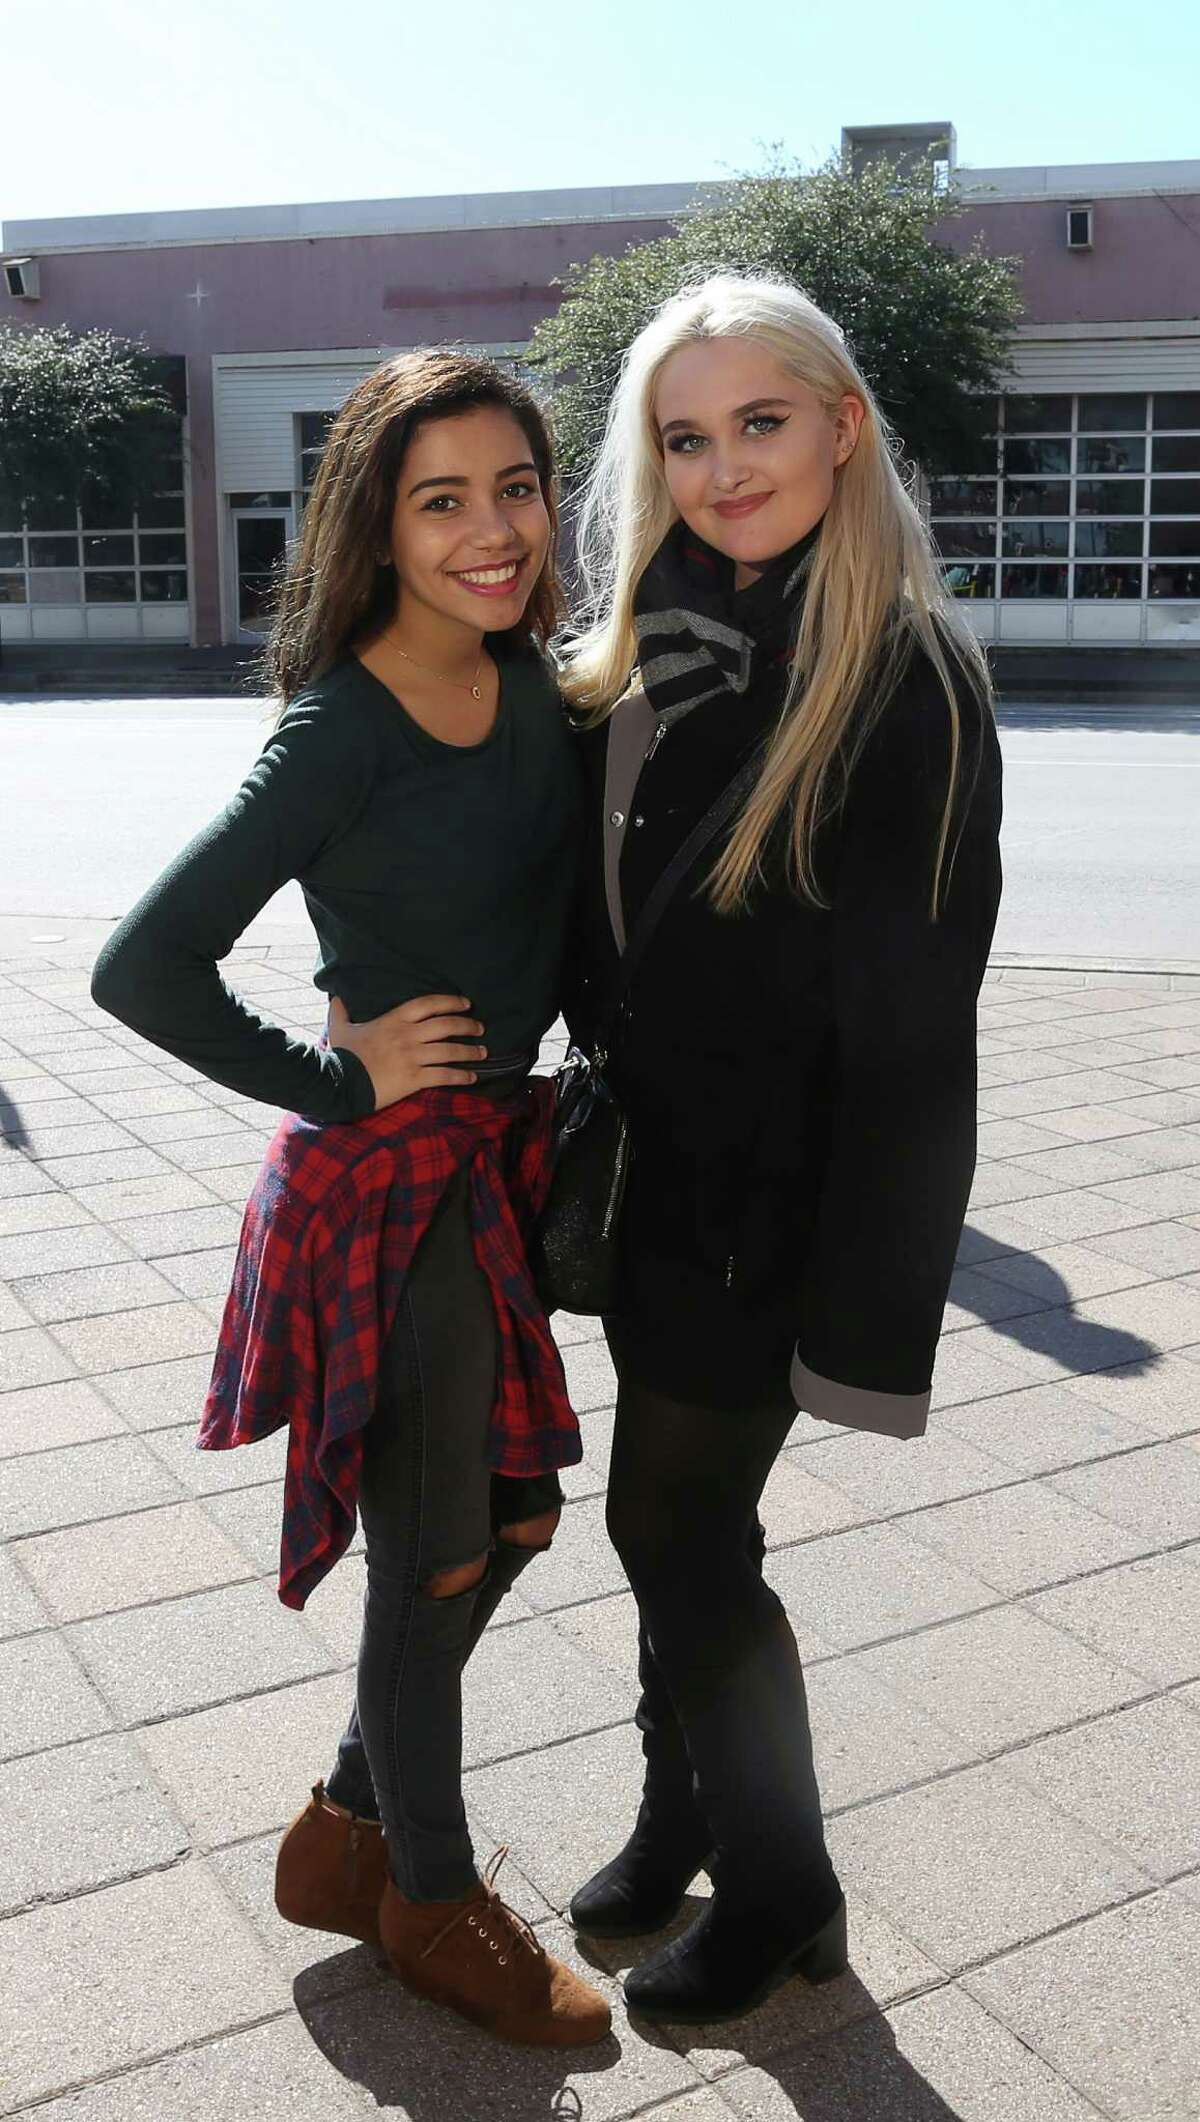 People pose for a photo while waiting in line to audition for The Voice at Minute Maid Park Saturday, Jan. 9, 2016, in Houston.